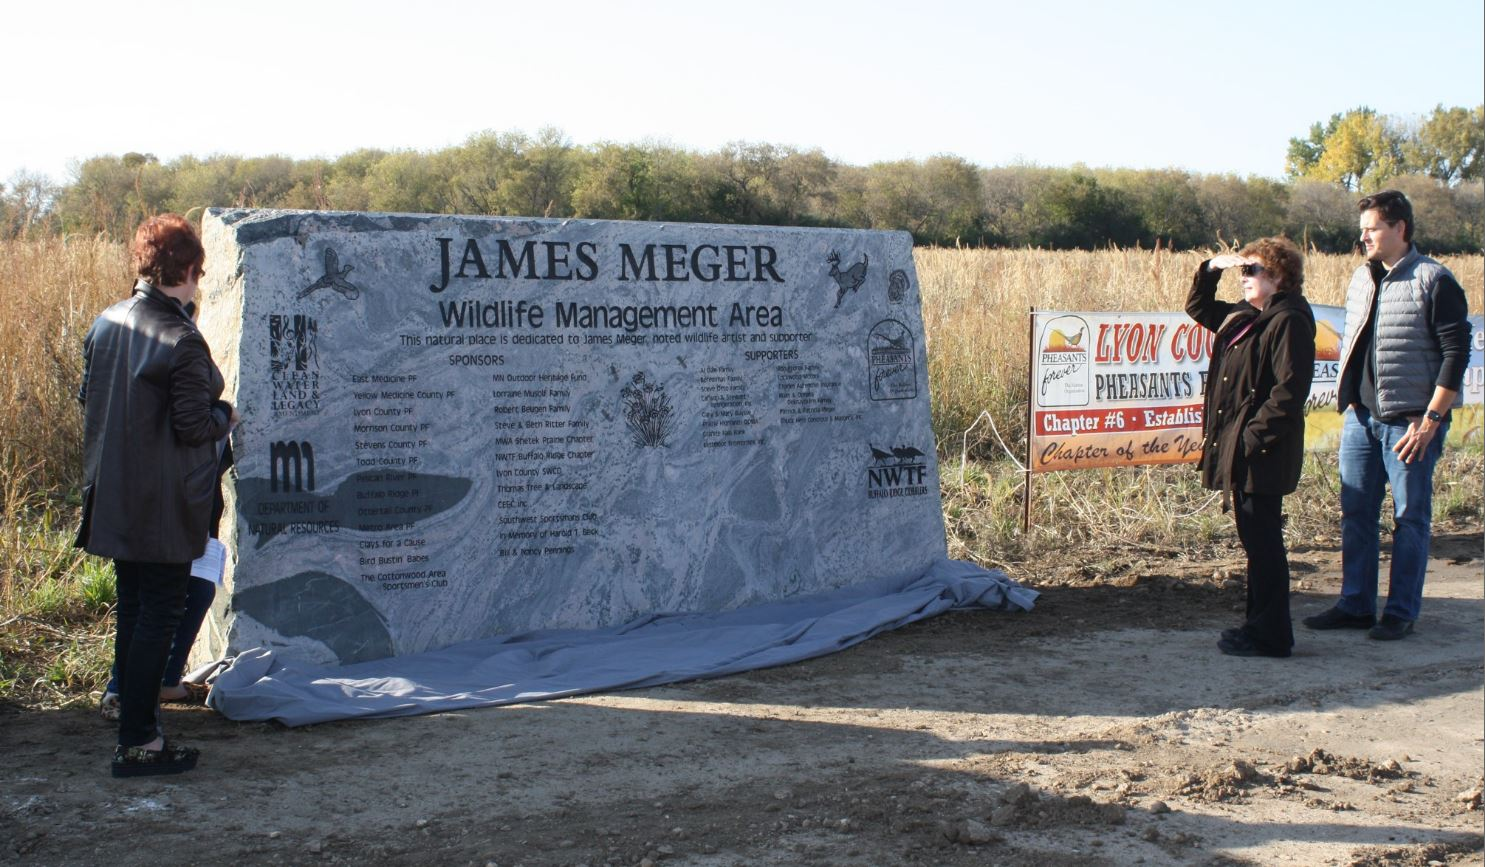 James Meger's family admire the stone monolith erected on the WMA's east side.